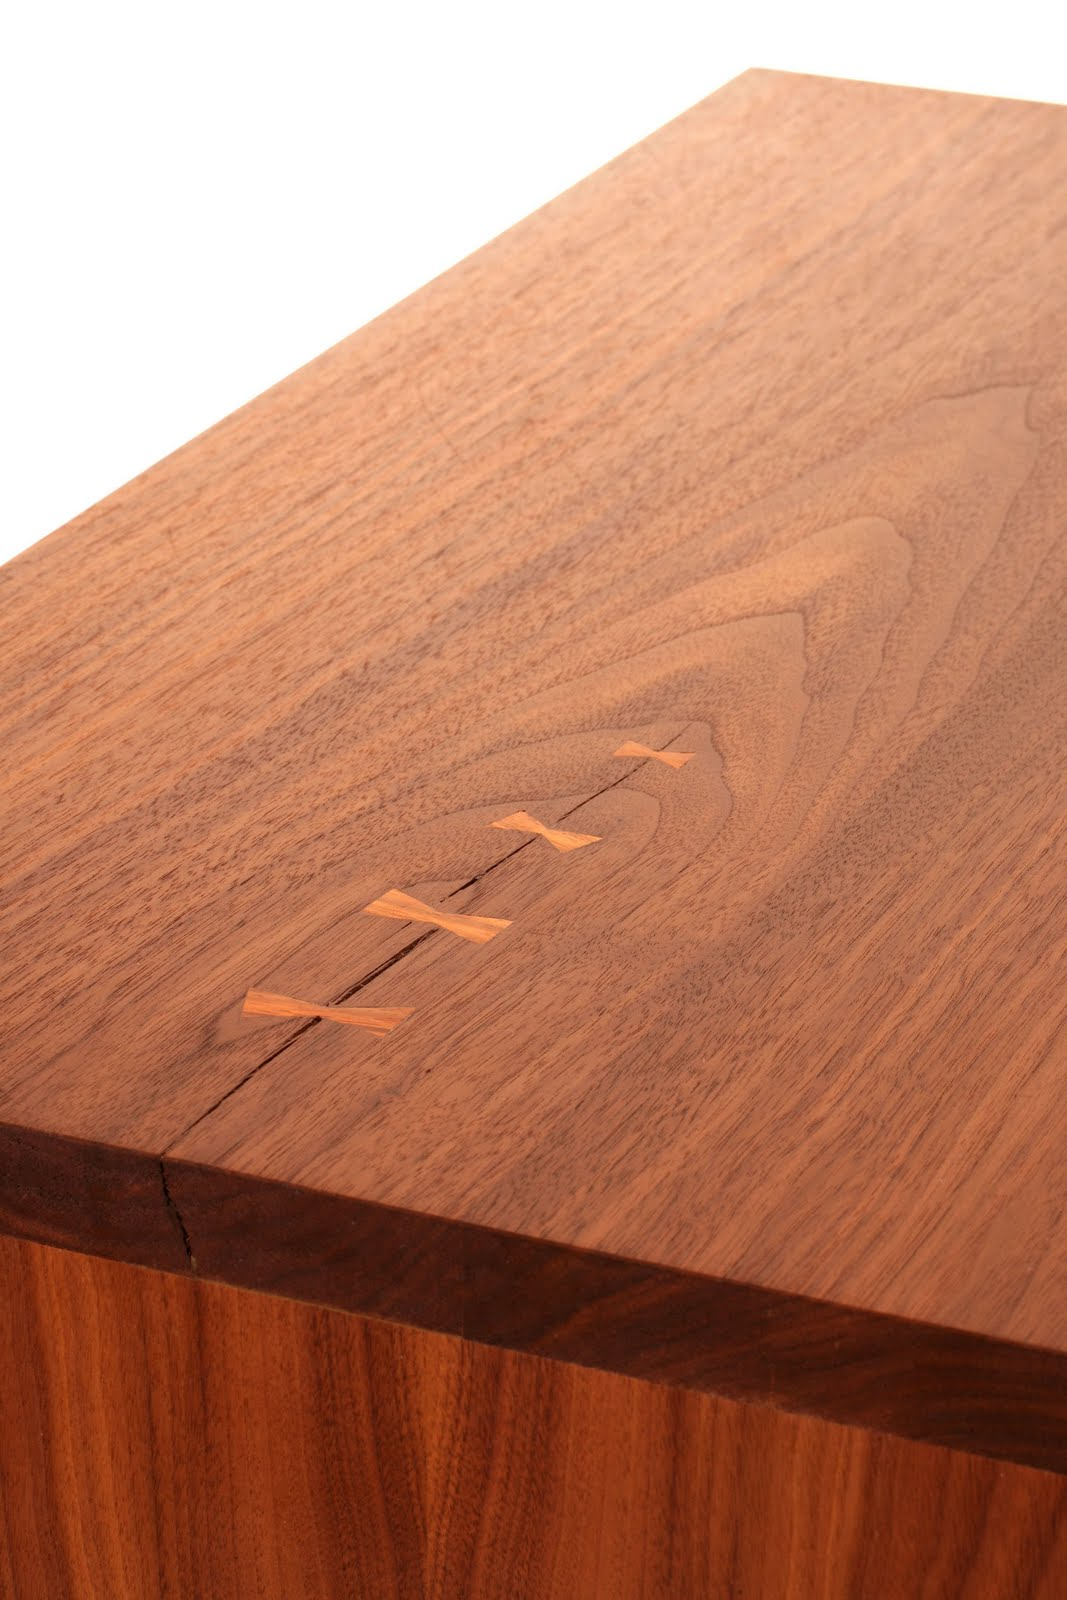 The bow tie joints are made of a wood called cocobolo. A real treat to ...